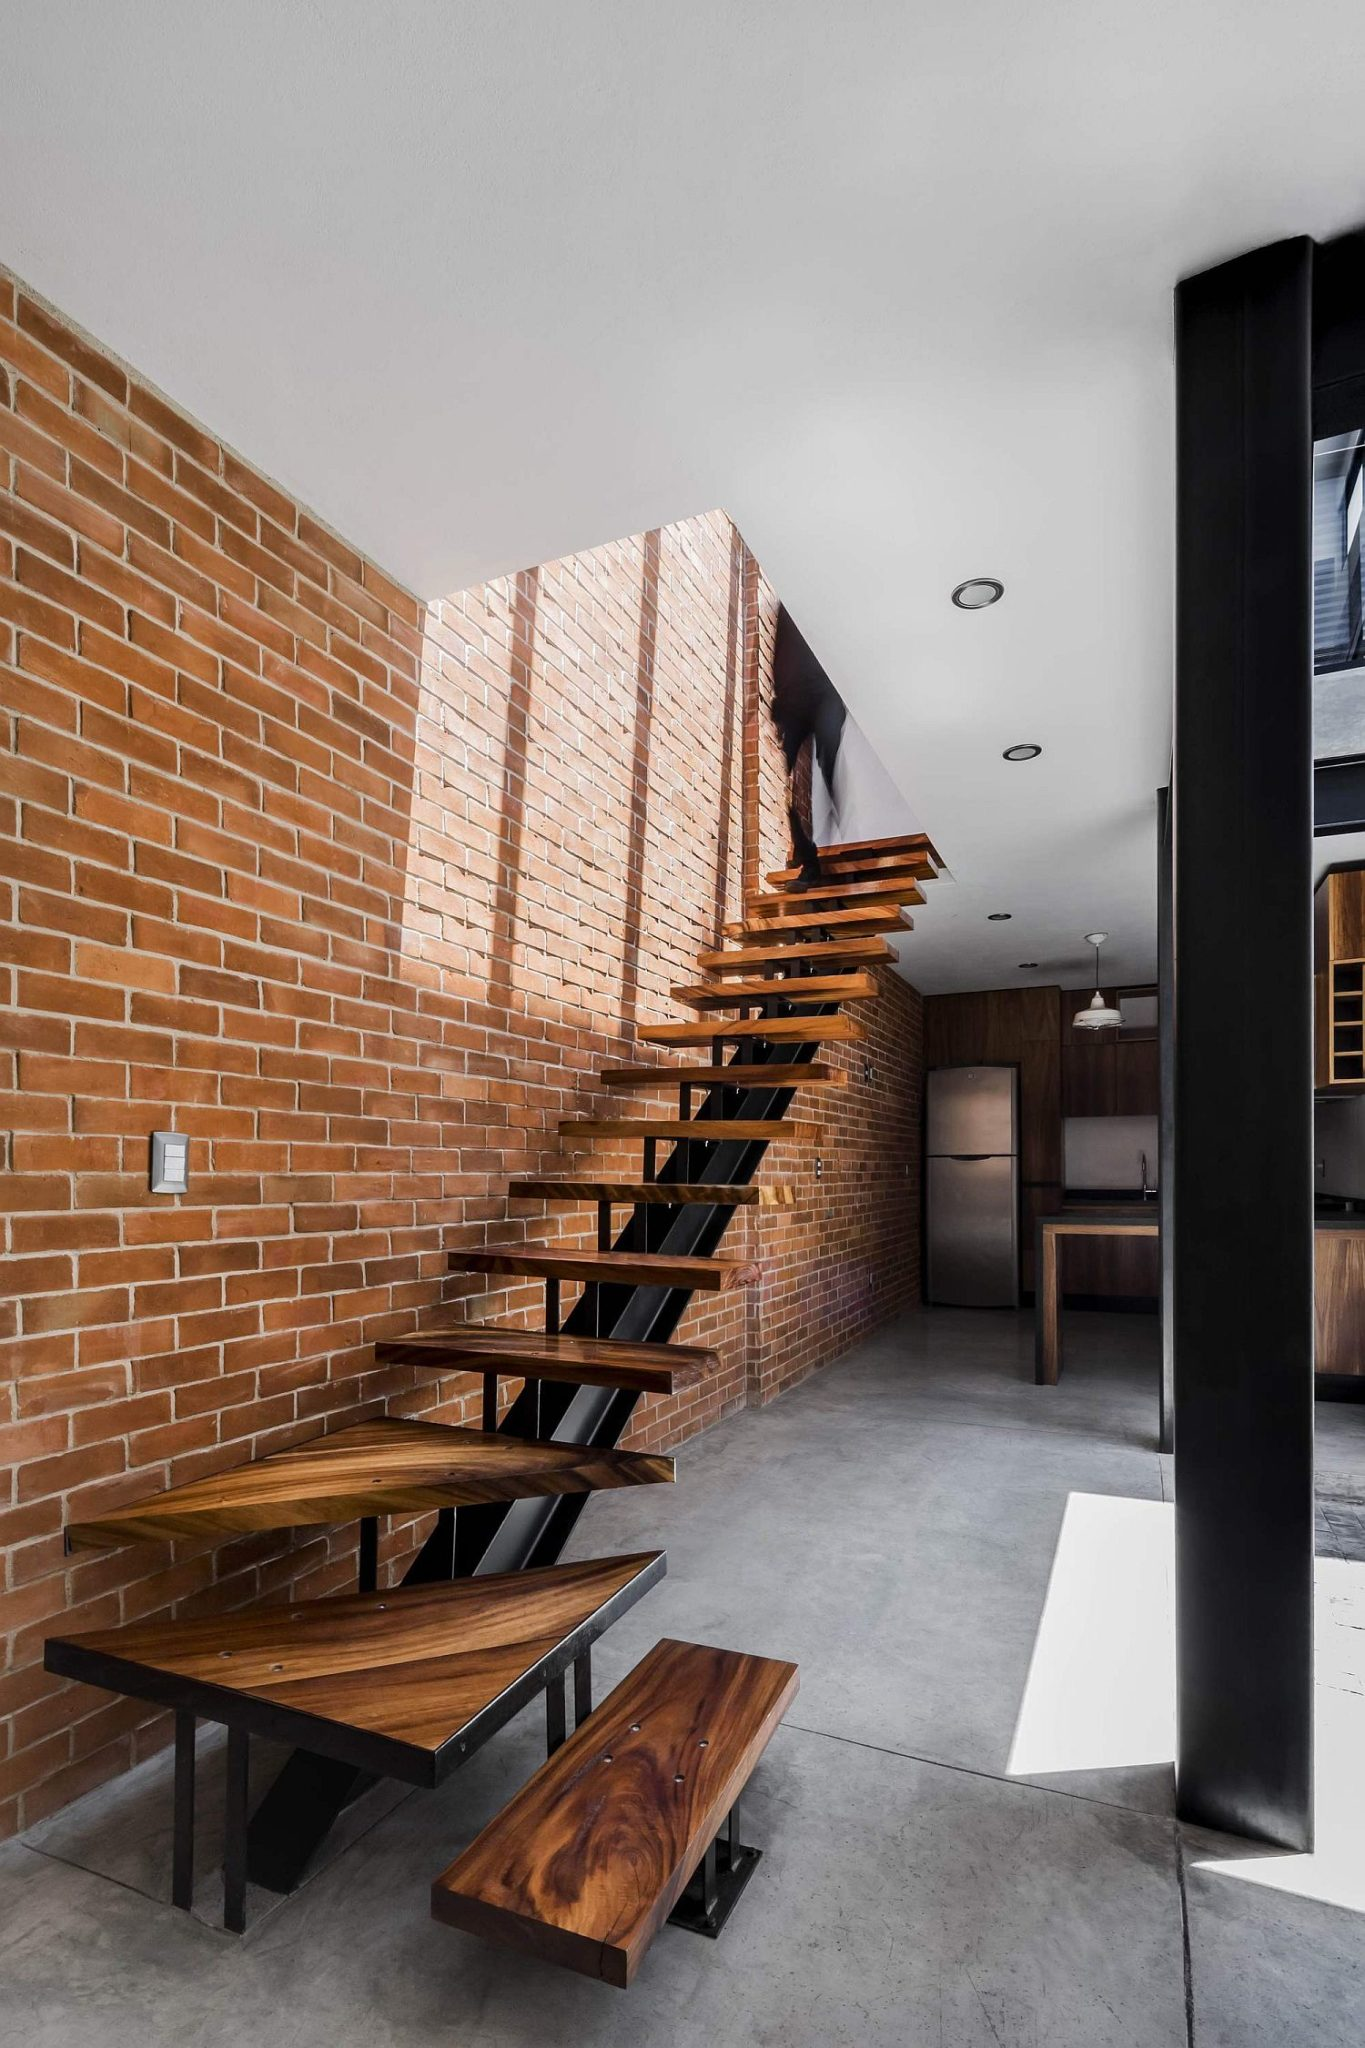 Exposed Brick Walls Steal The Show In This Modern